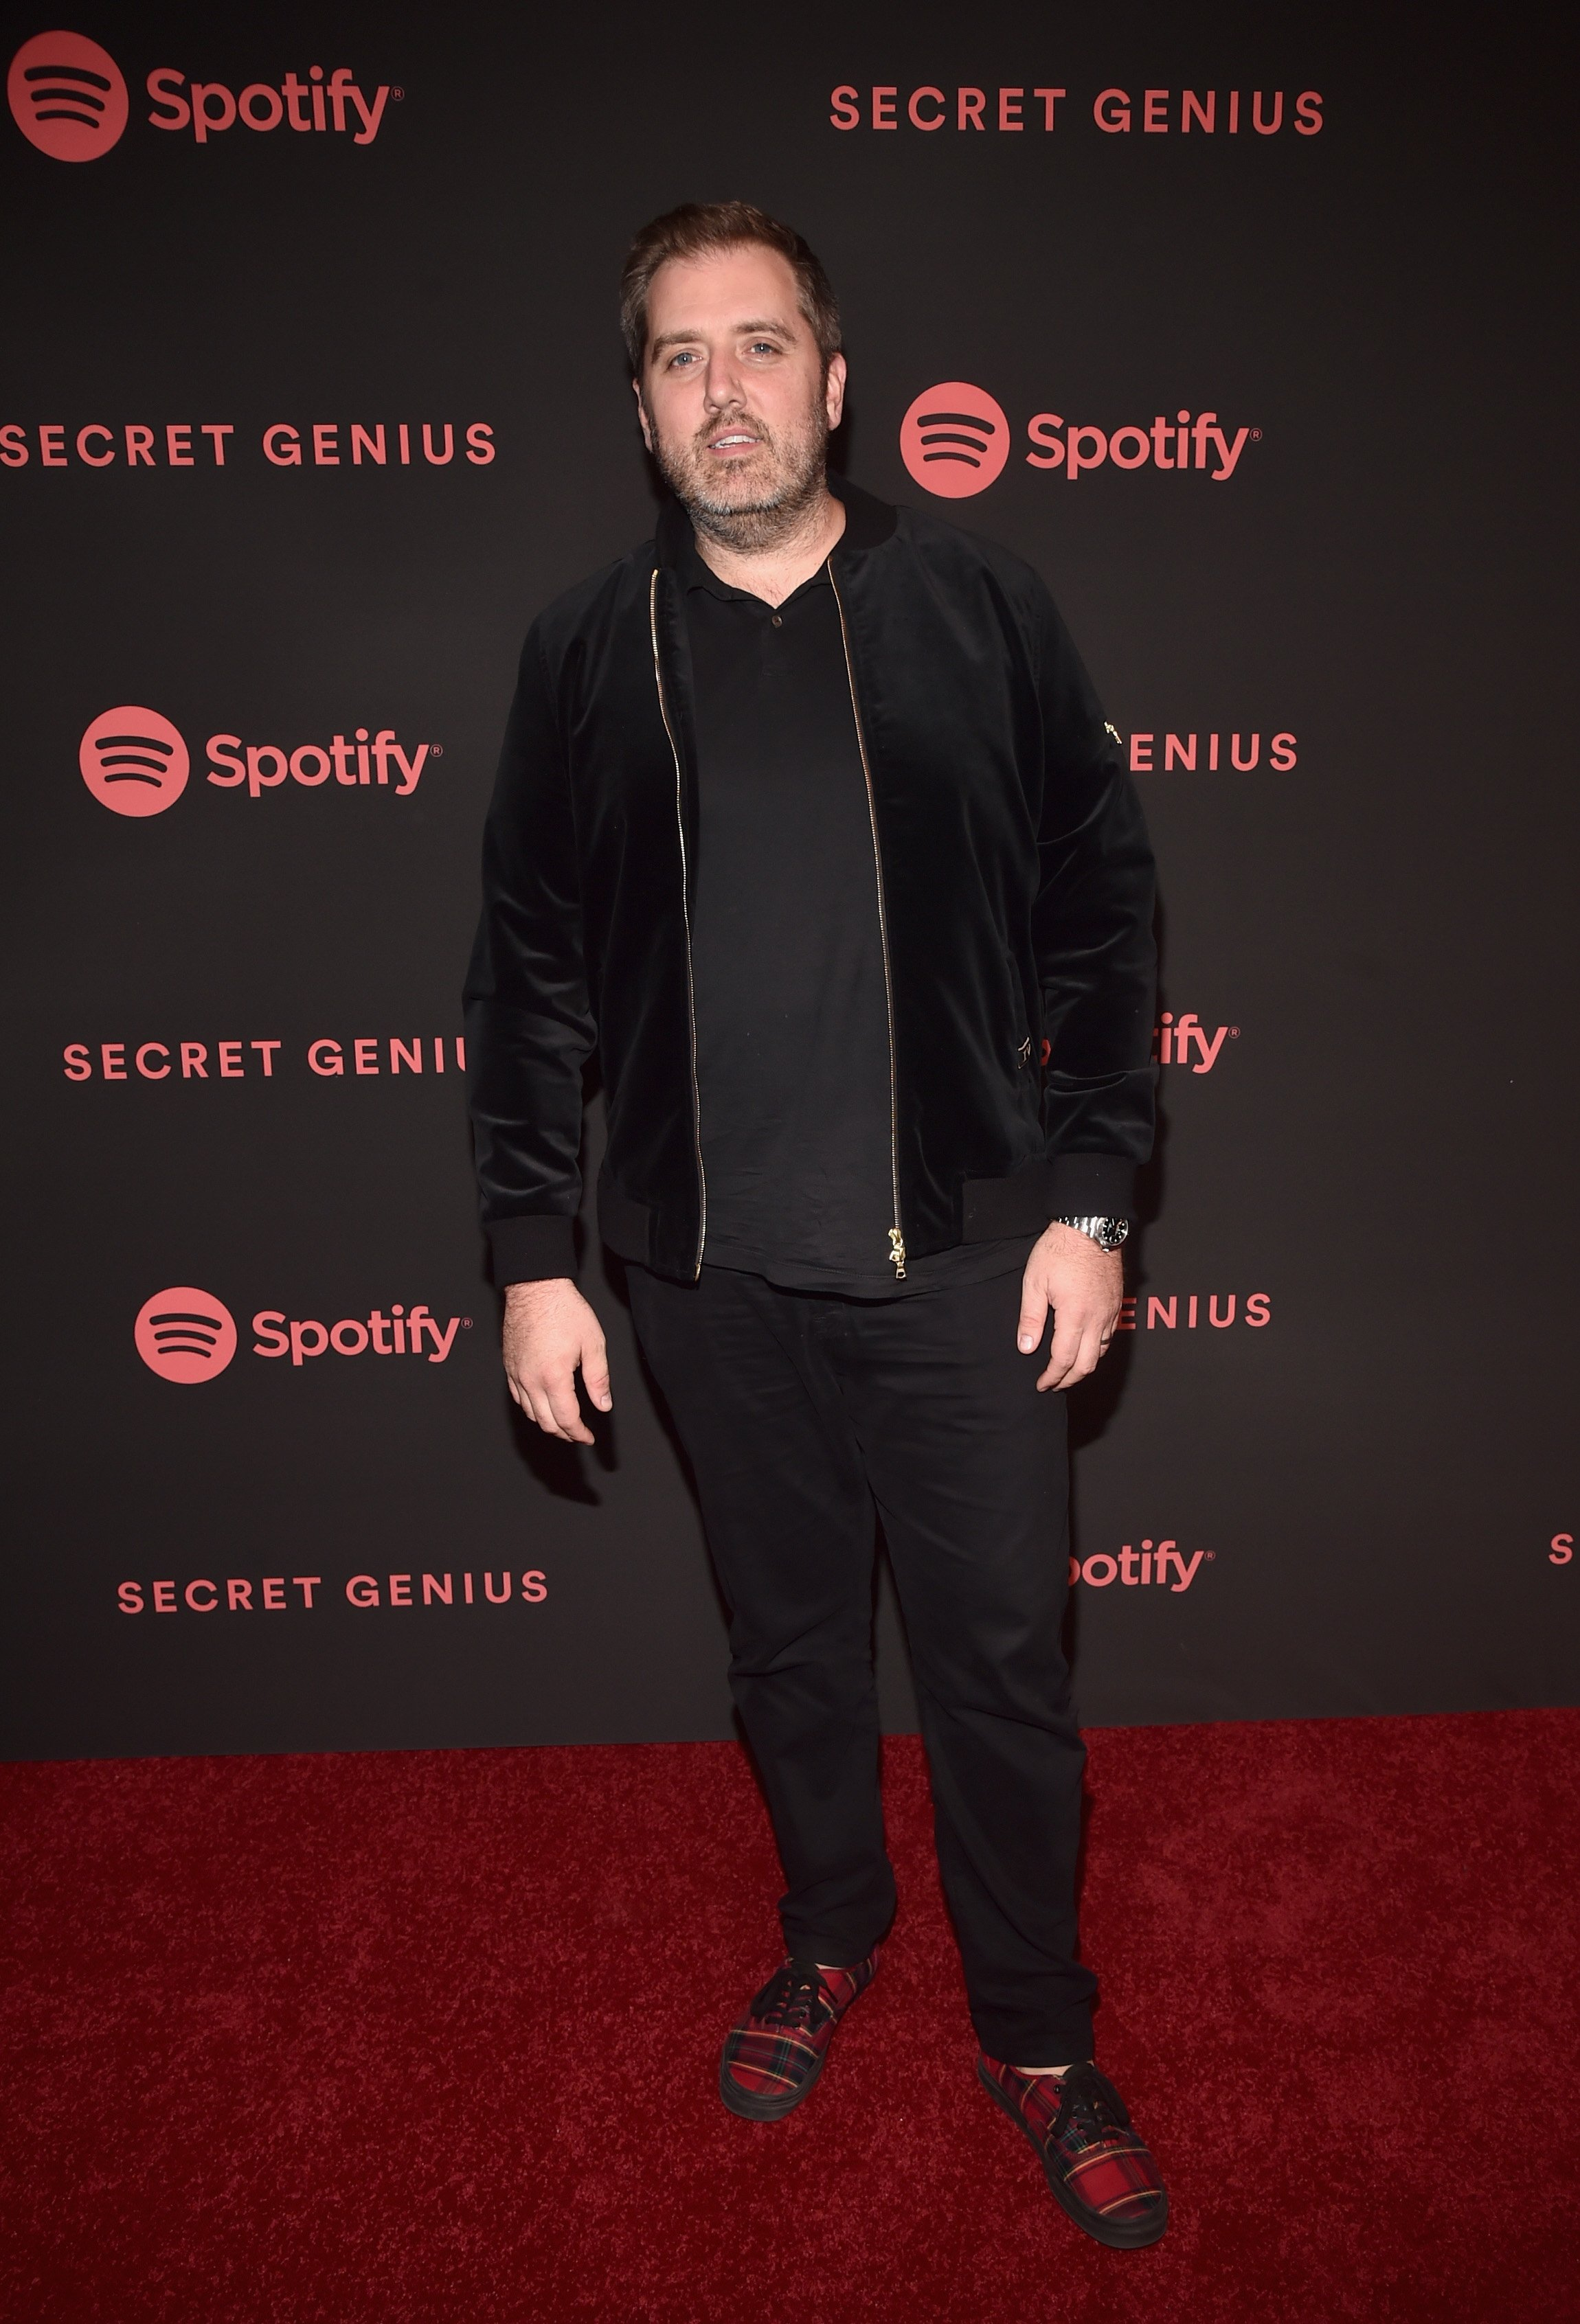 Busbee assiste aux Spotify Secret Genius Awards organisés par NE-YO au The Theatre at Ace Hotel le 16 novembre 2018 à Los Angeles, Californie | Photo : Getty Images